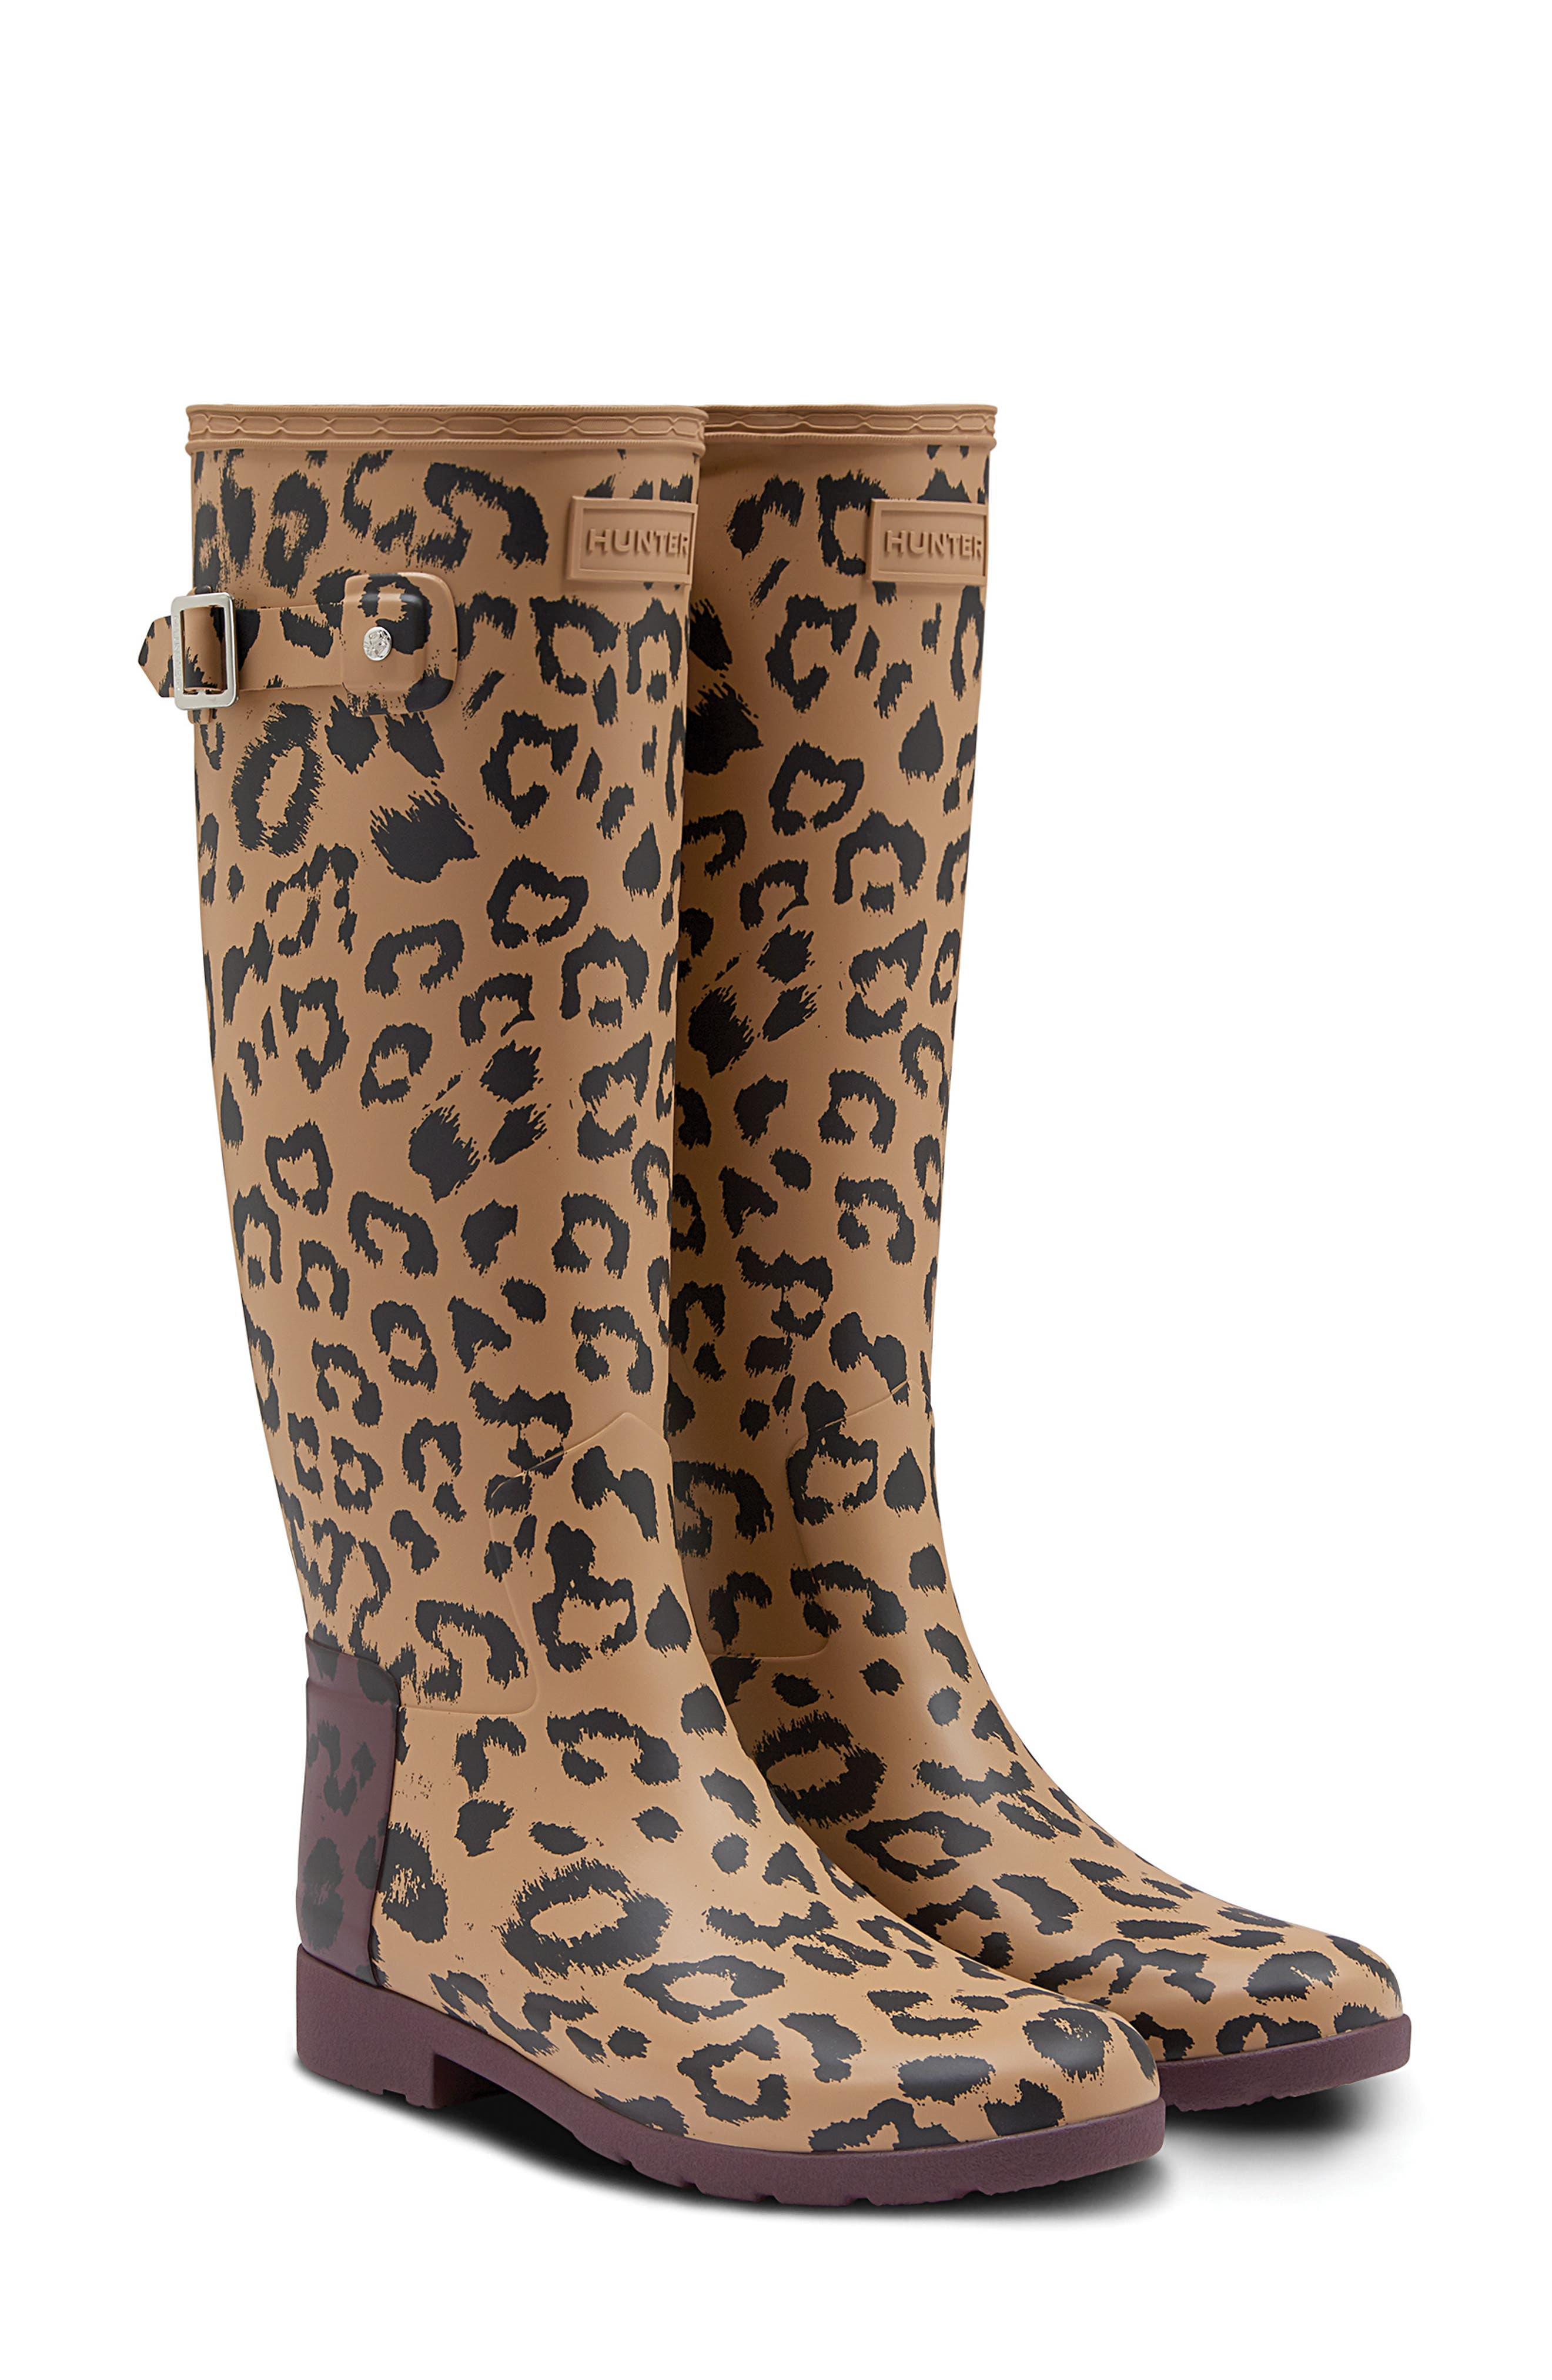 Original Leopard Print Refined Tall Waterproof Rain Boot,                             Main thumbnail 1, color,                             TAWNY/ OXBLOOD RUBBER